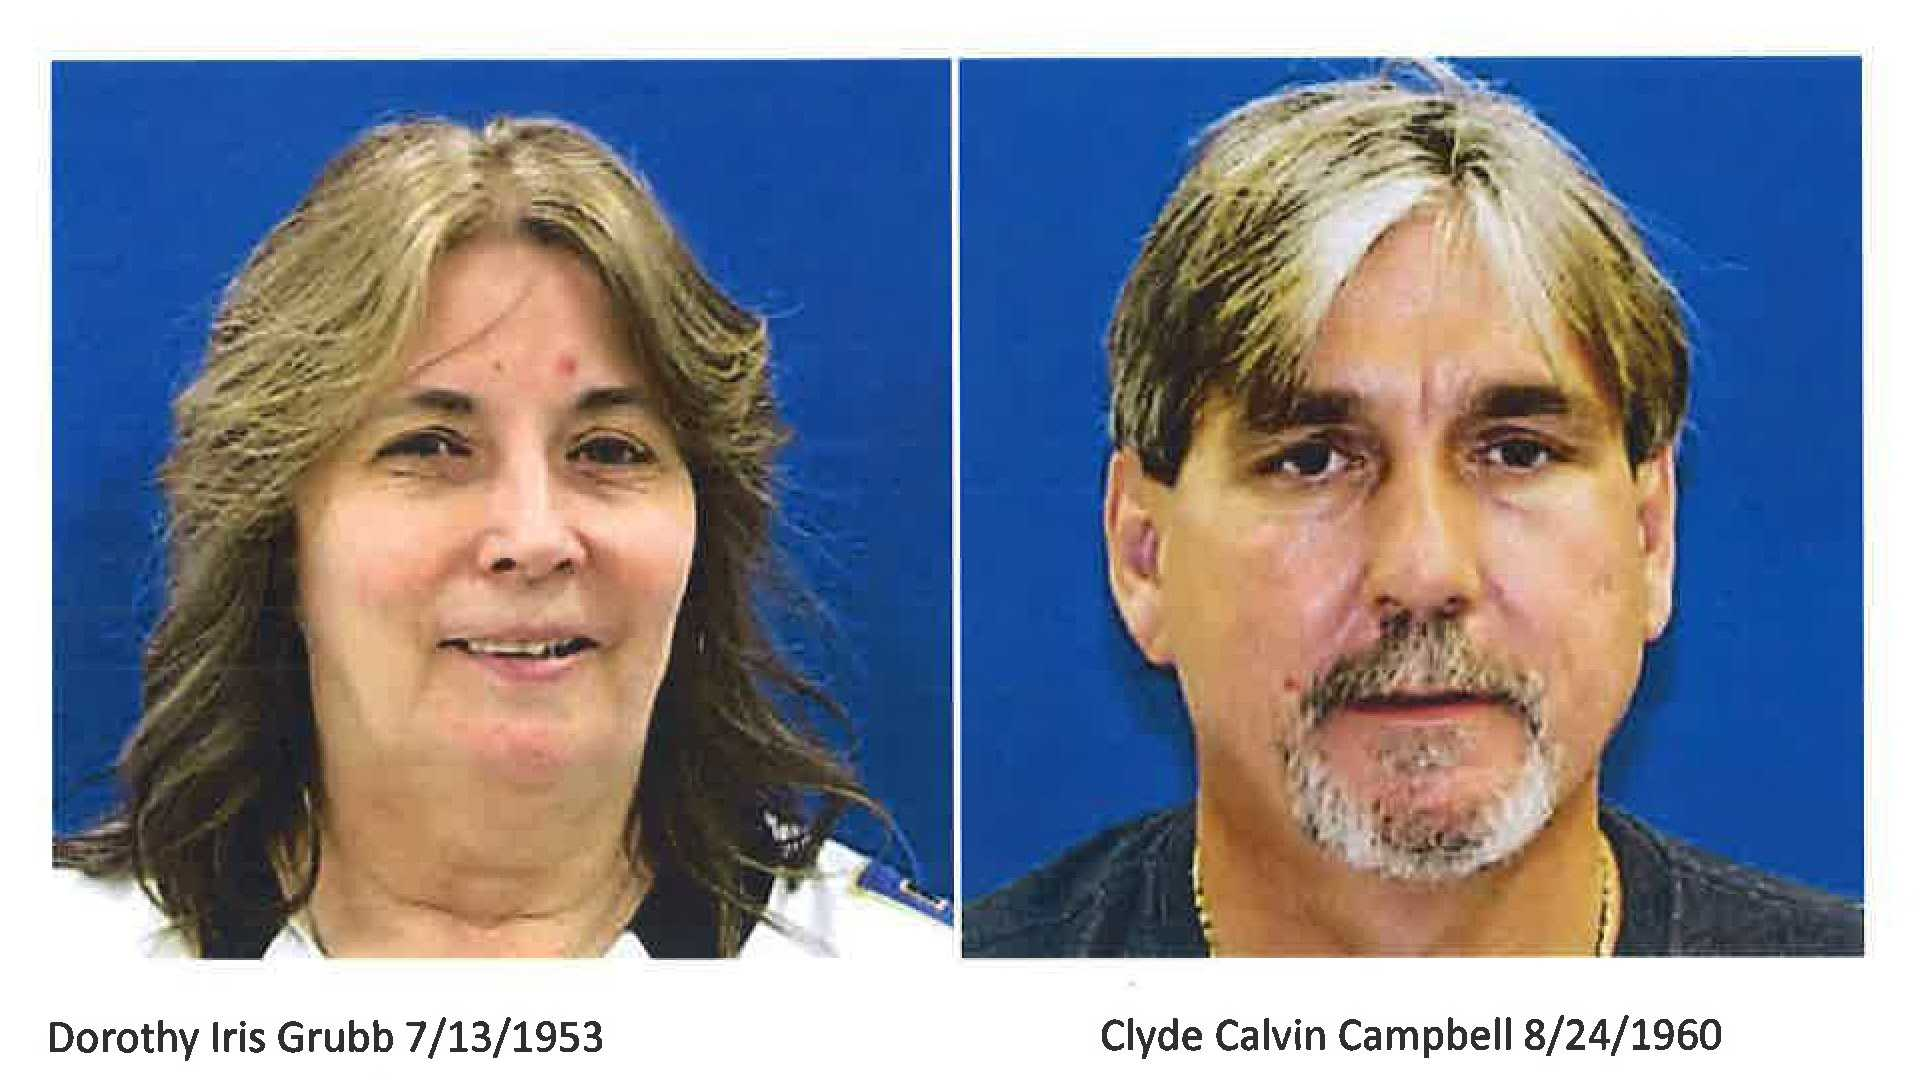 Dorothy Grubb and boyfriend Clyde Campbell. Police say they arrested Campbell on Monday, but they're still looking for Grubb.